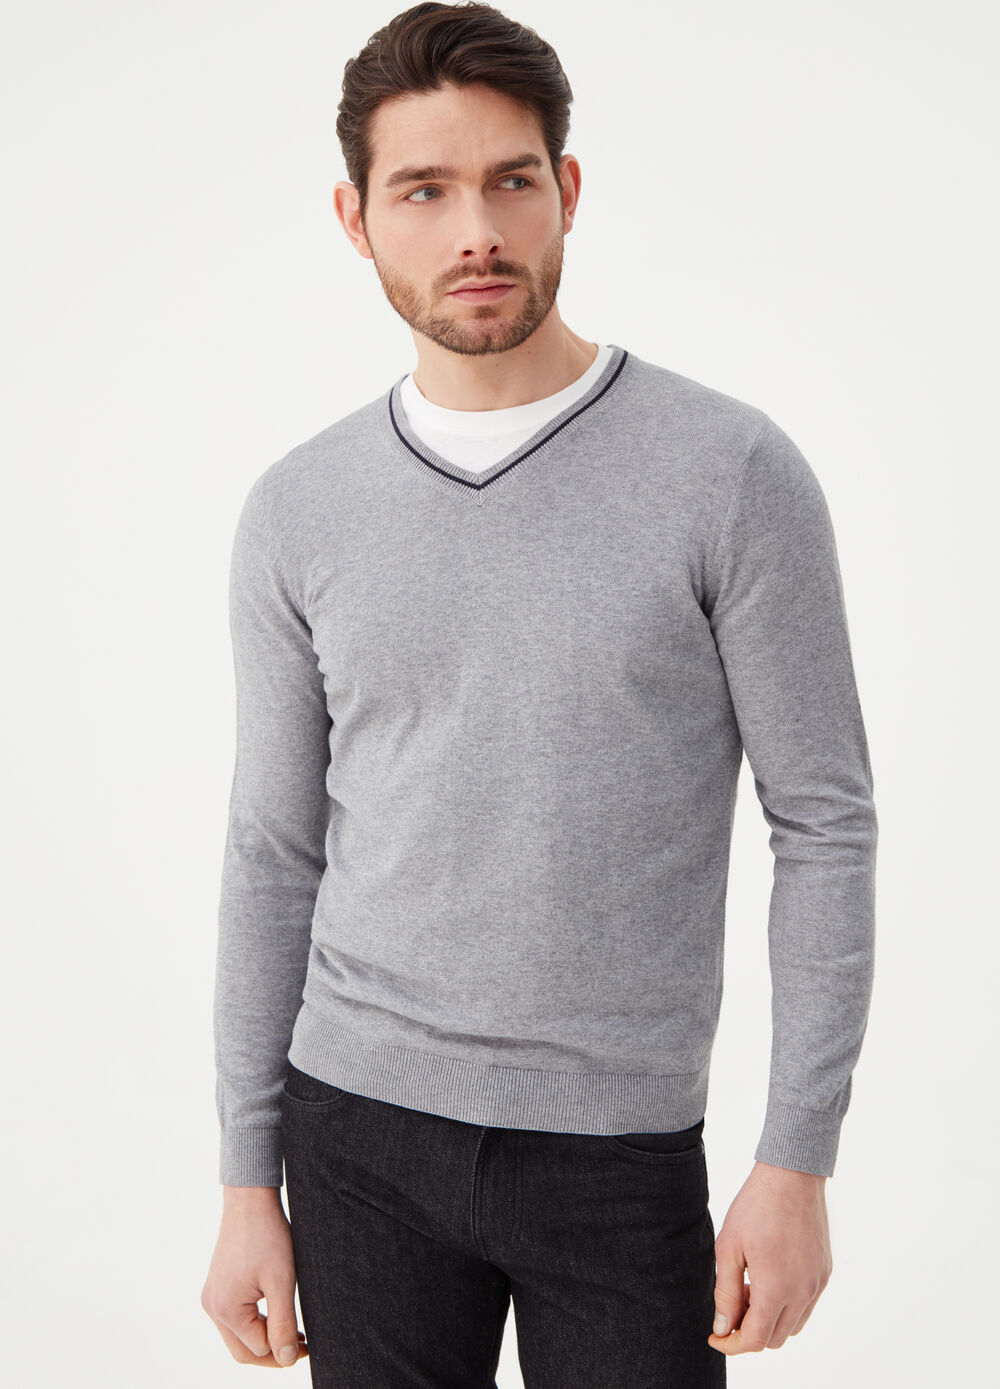 Mélange pullover with V neck